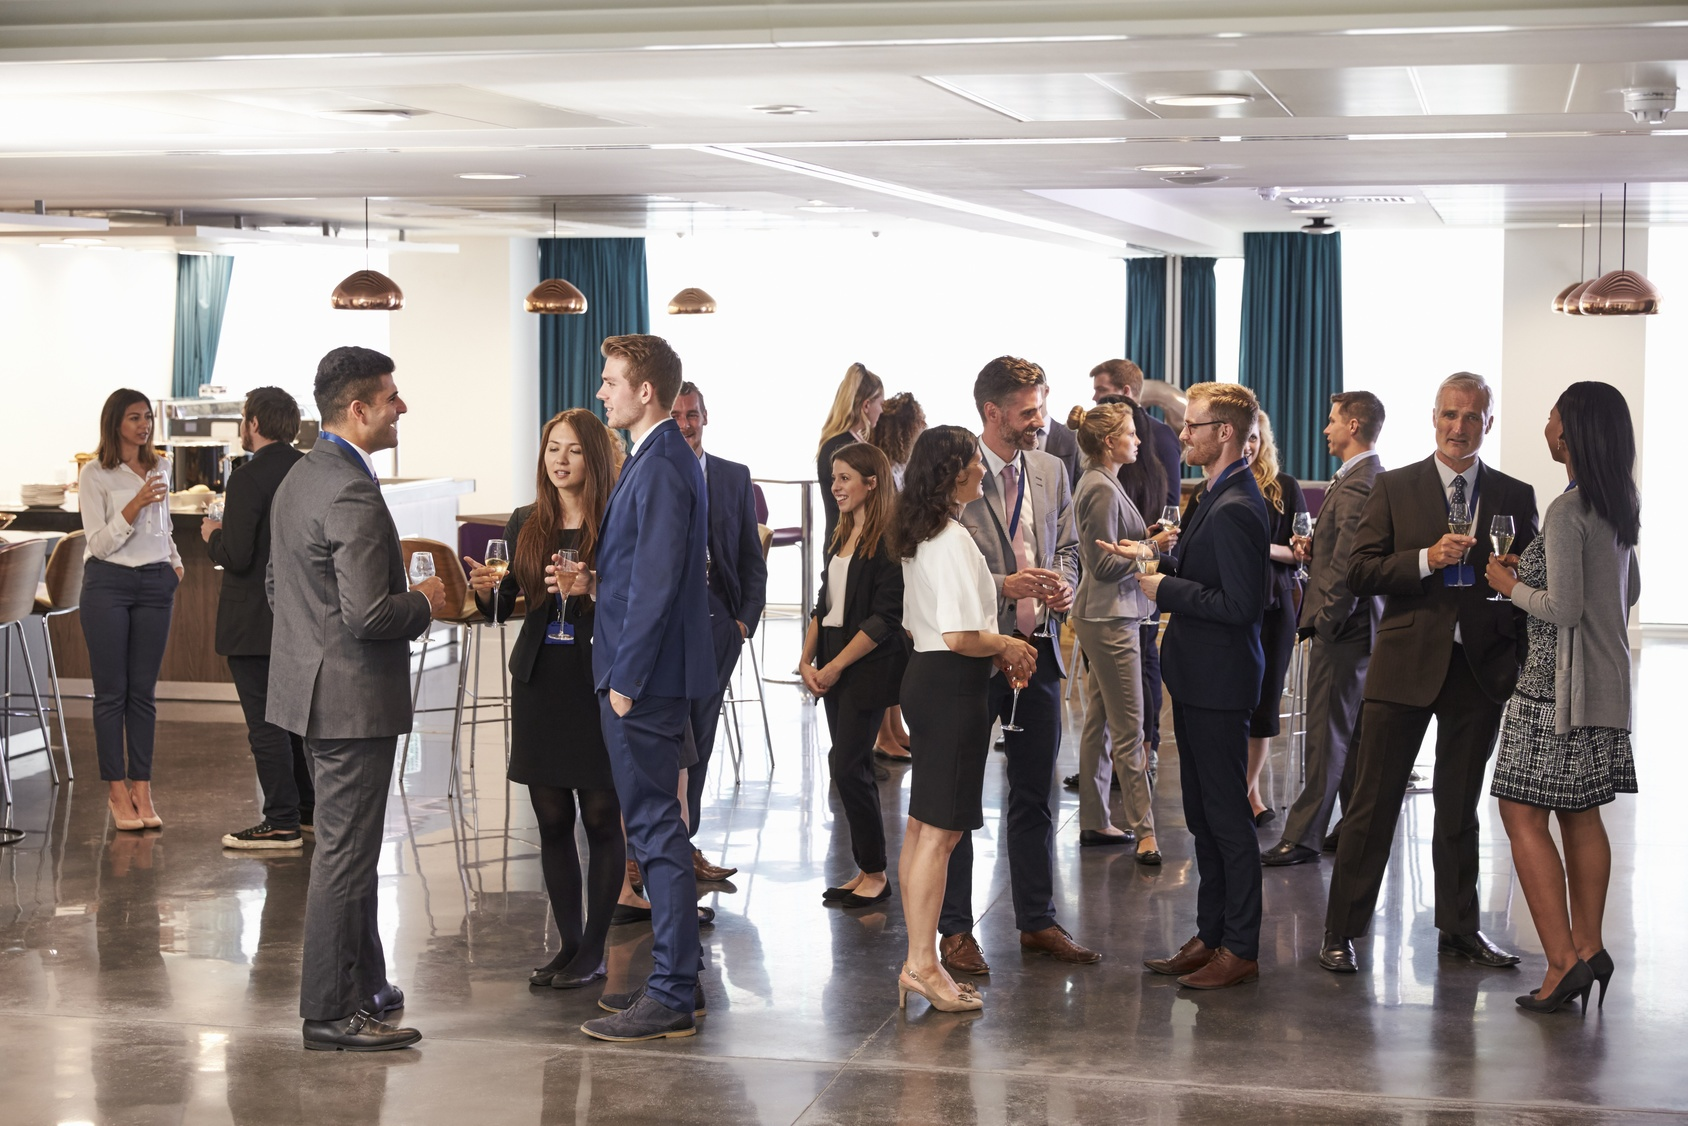 9 Ways to Maximize Your Next Networking Experience